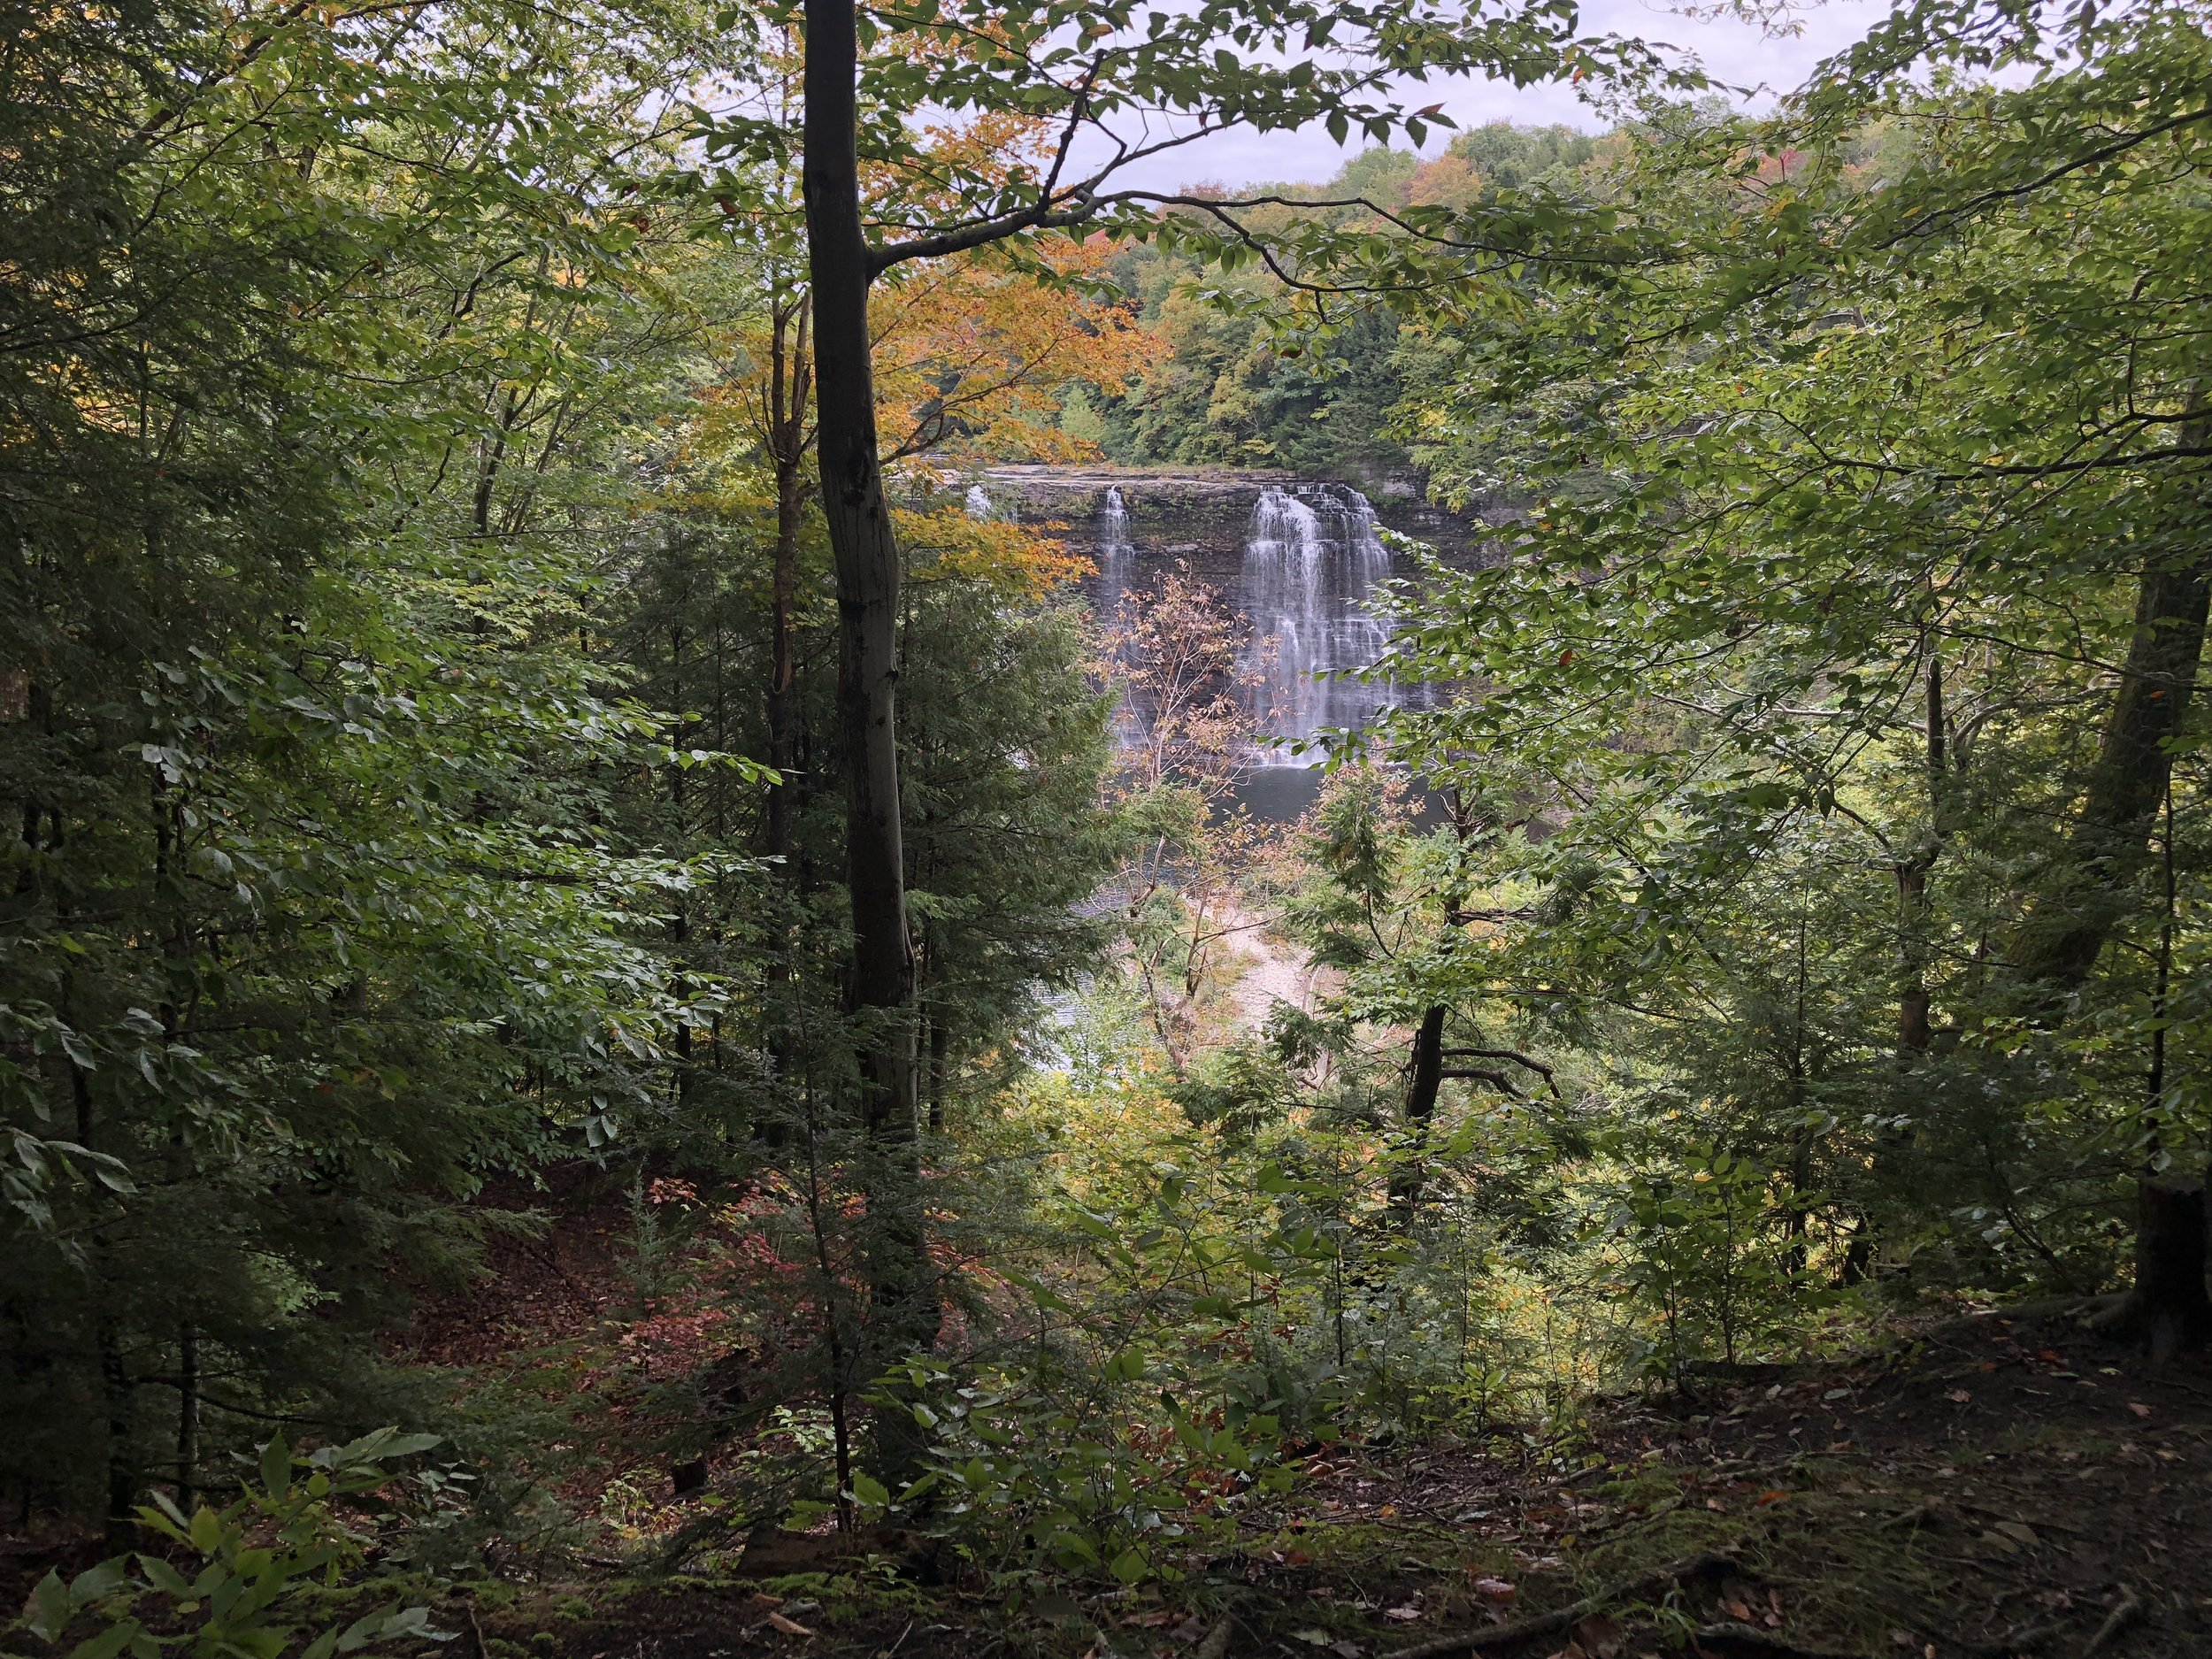 Salmon River Falls—a 110-foot waterfall near the new homestead!